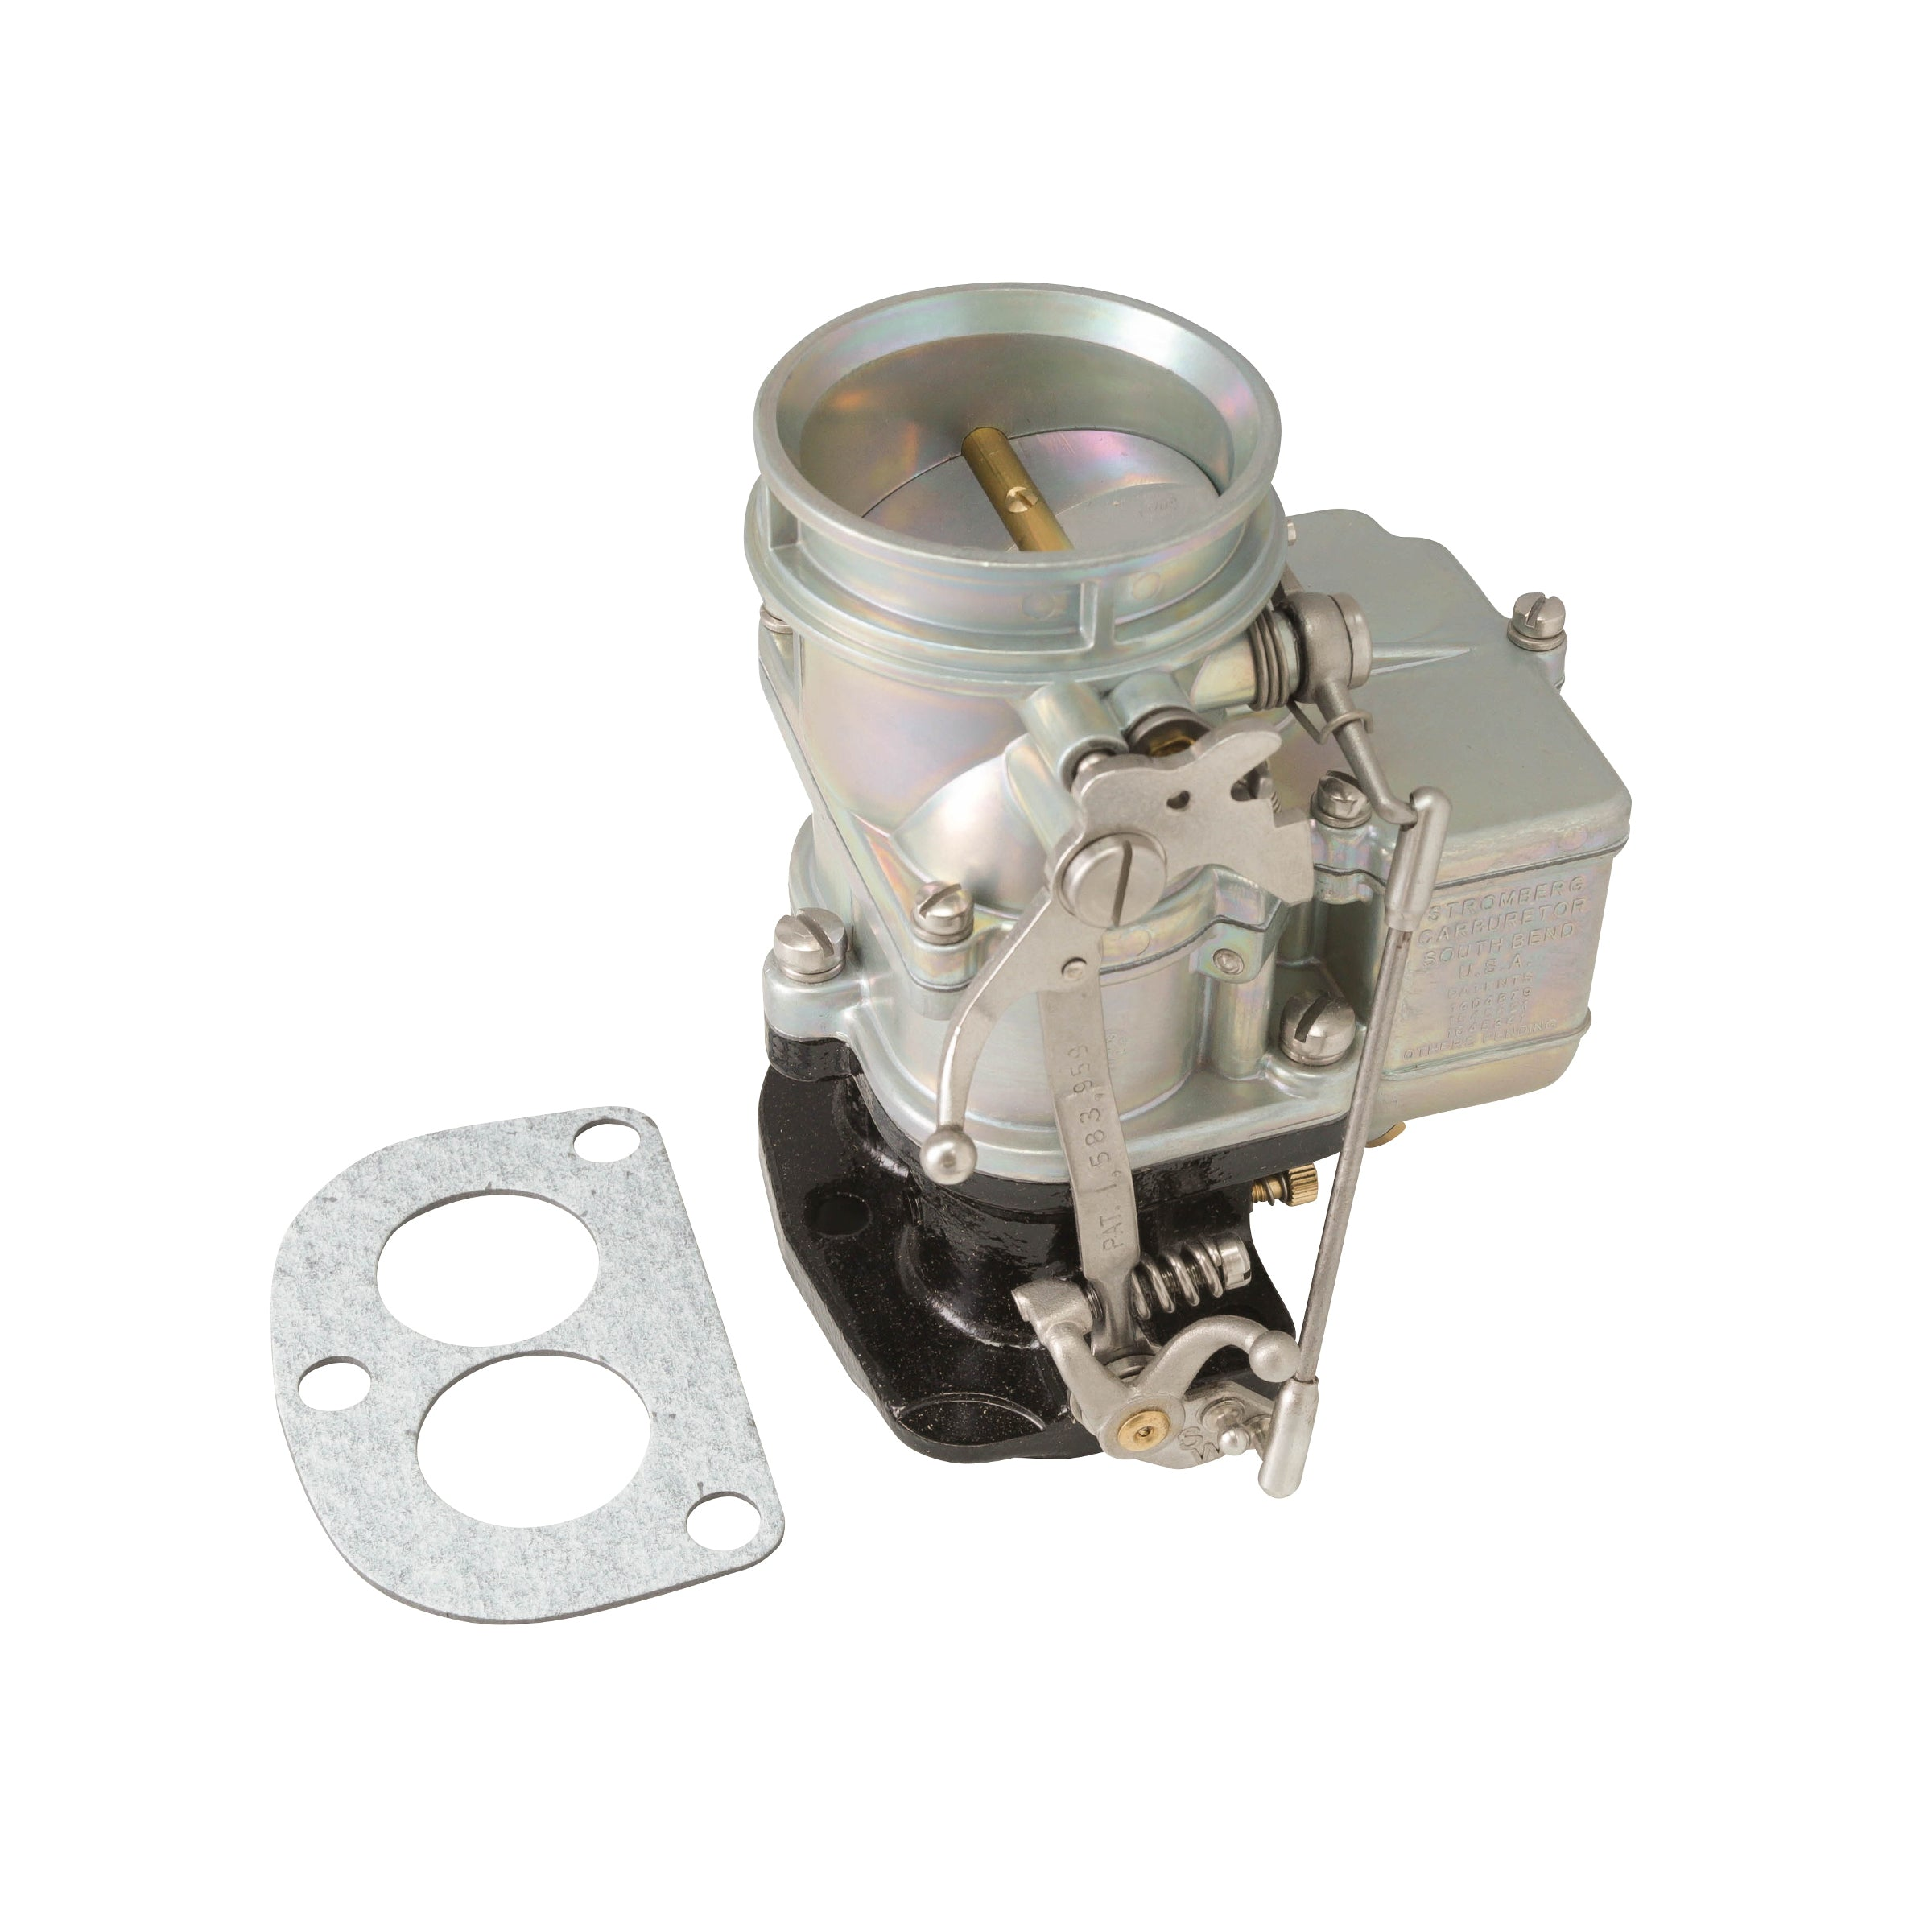 Genuine Stromberg 97 Carburetor • Zinc Die-Cast Body